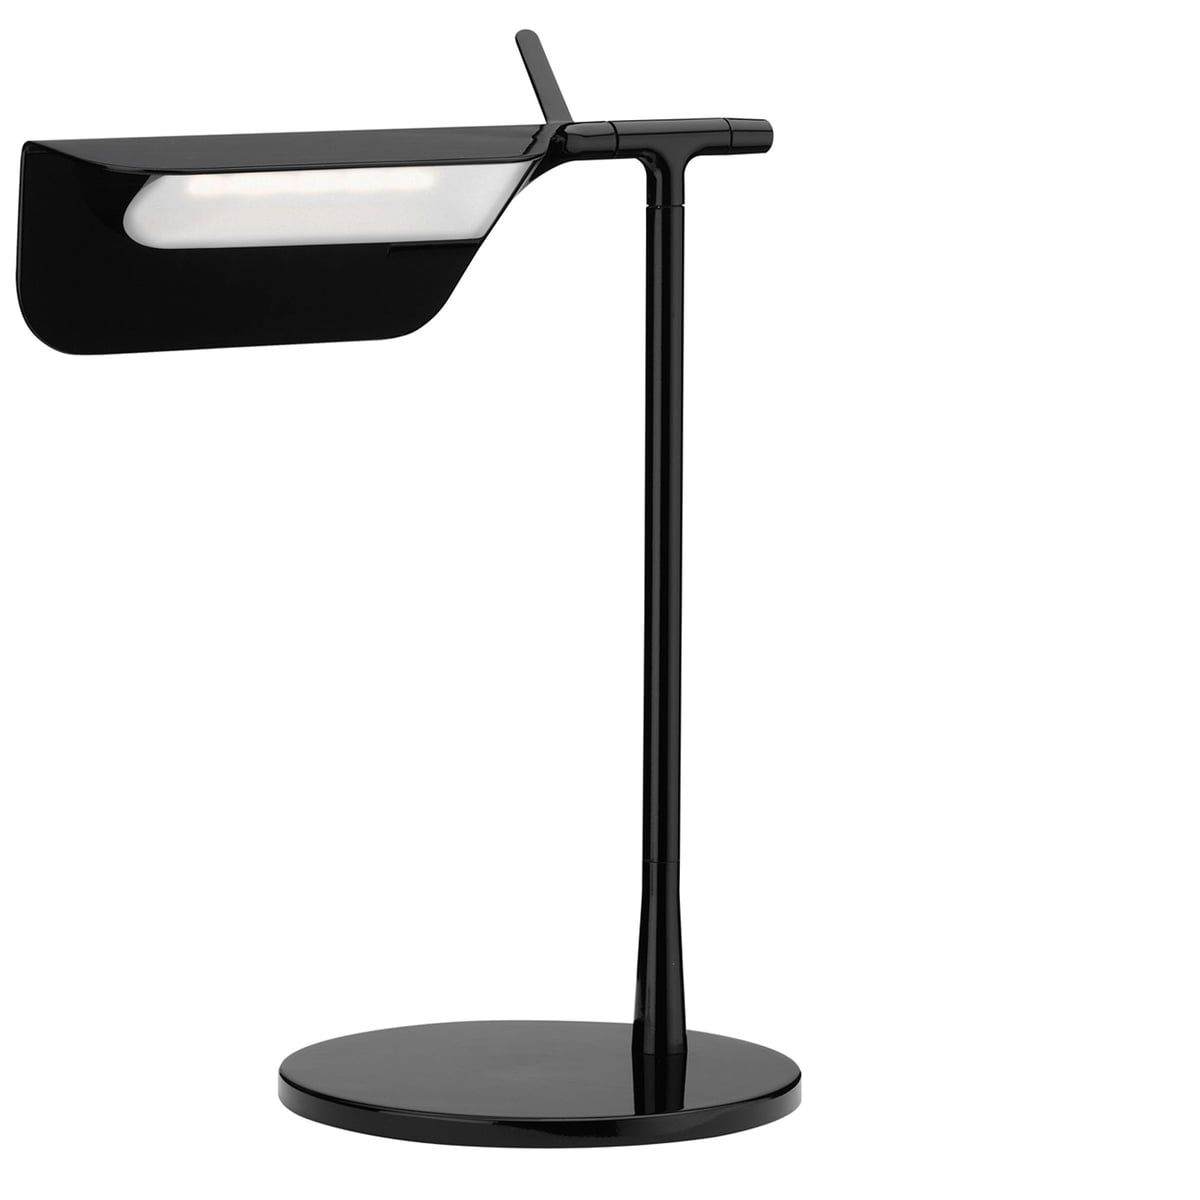 Genial Flos   Tab LED Table Lamp, Schwarz